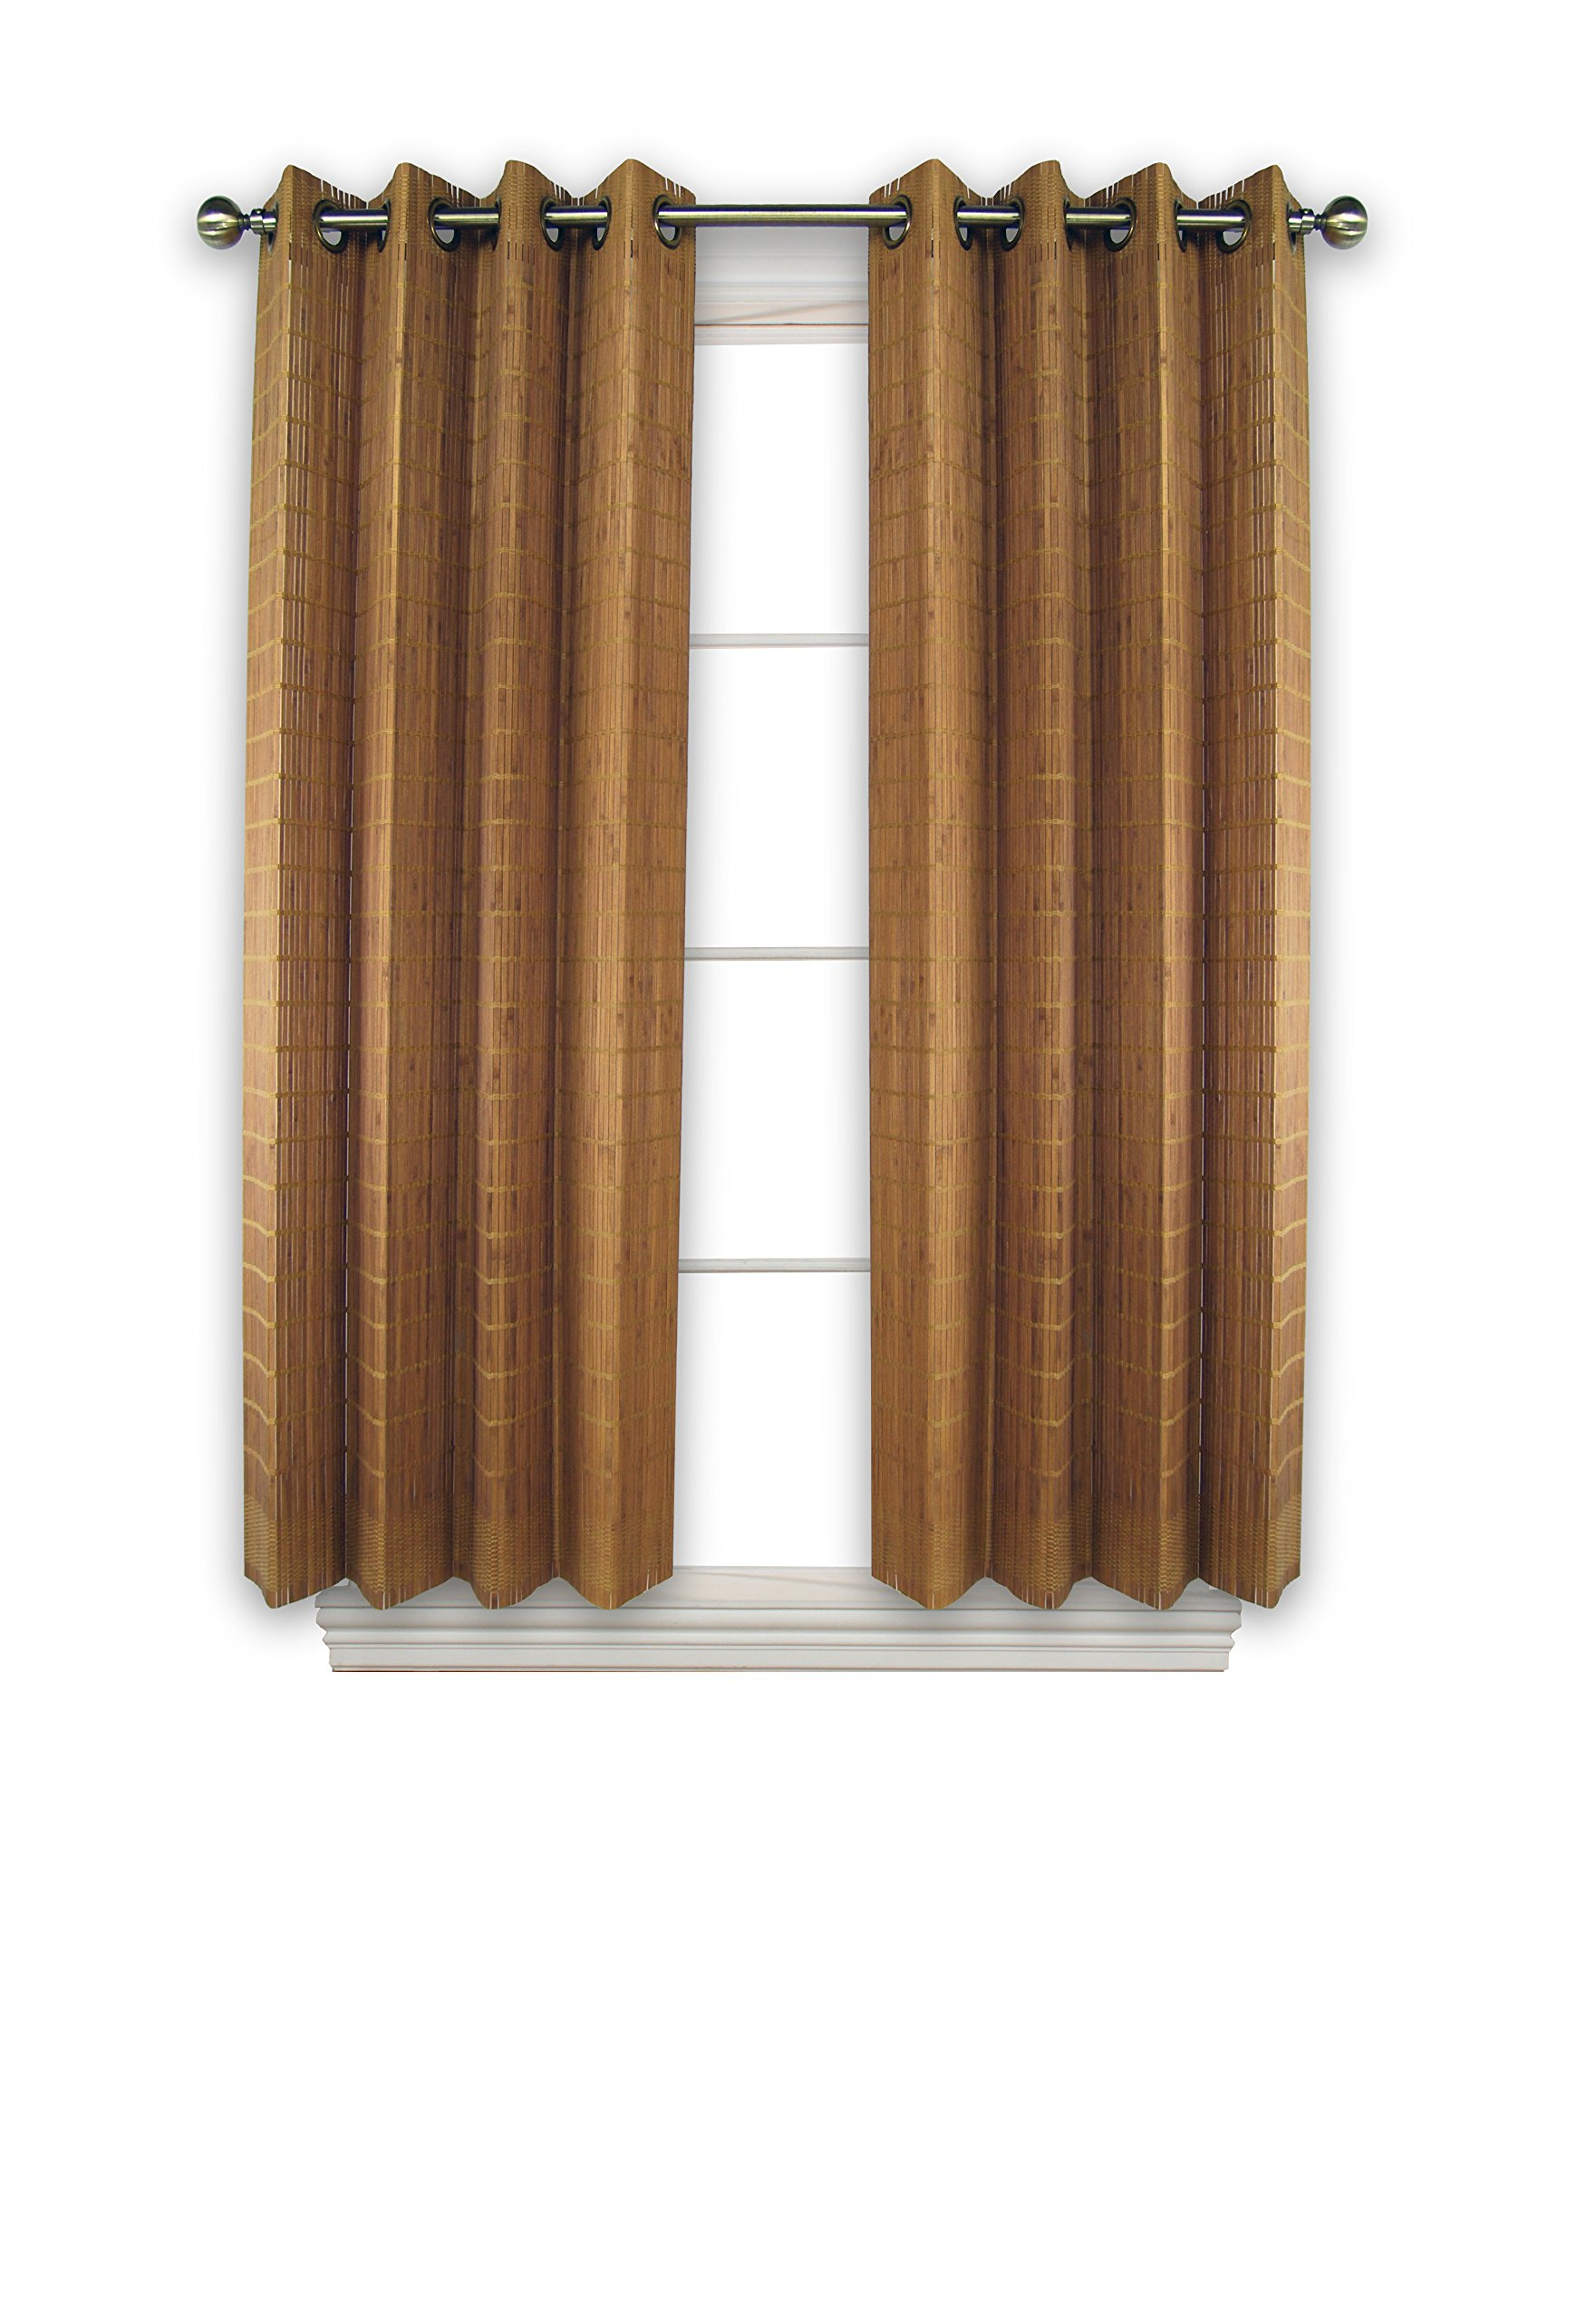 Versailles Home Fashions BPU144263-9 Bamboo Wood Curtain Panel with Grommets, 42'' x 63'', Teak